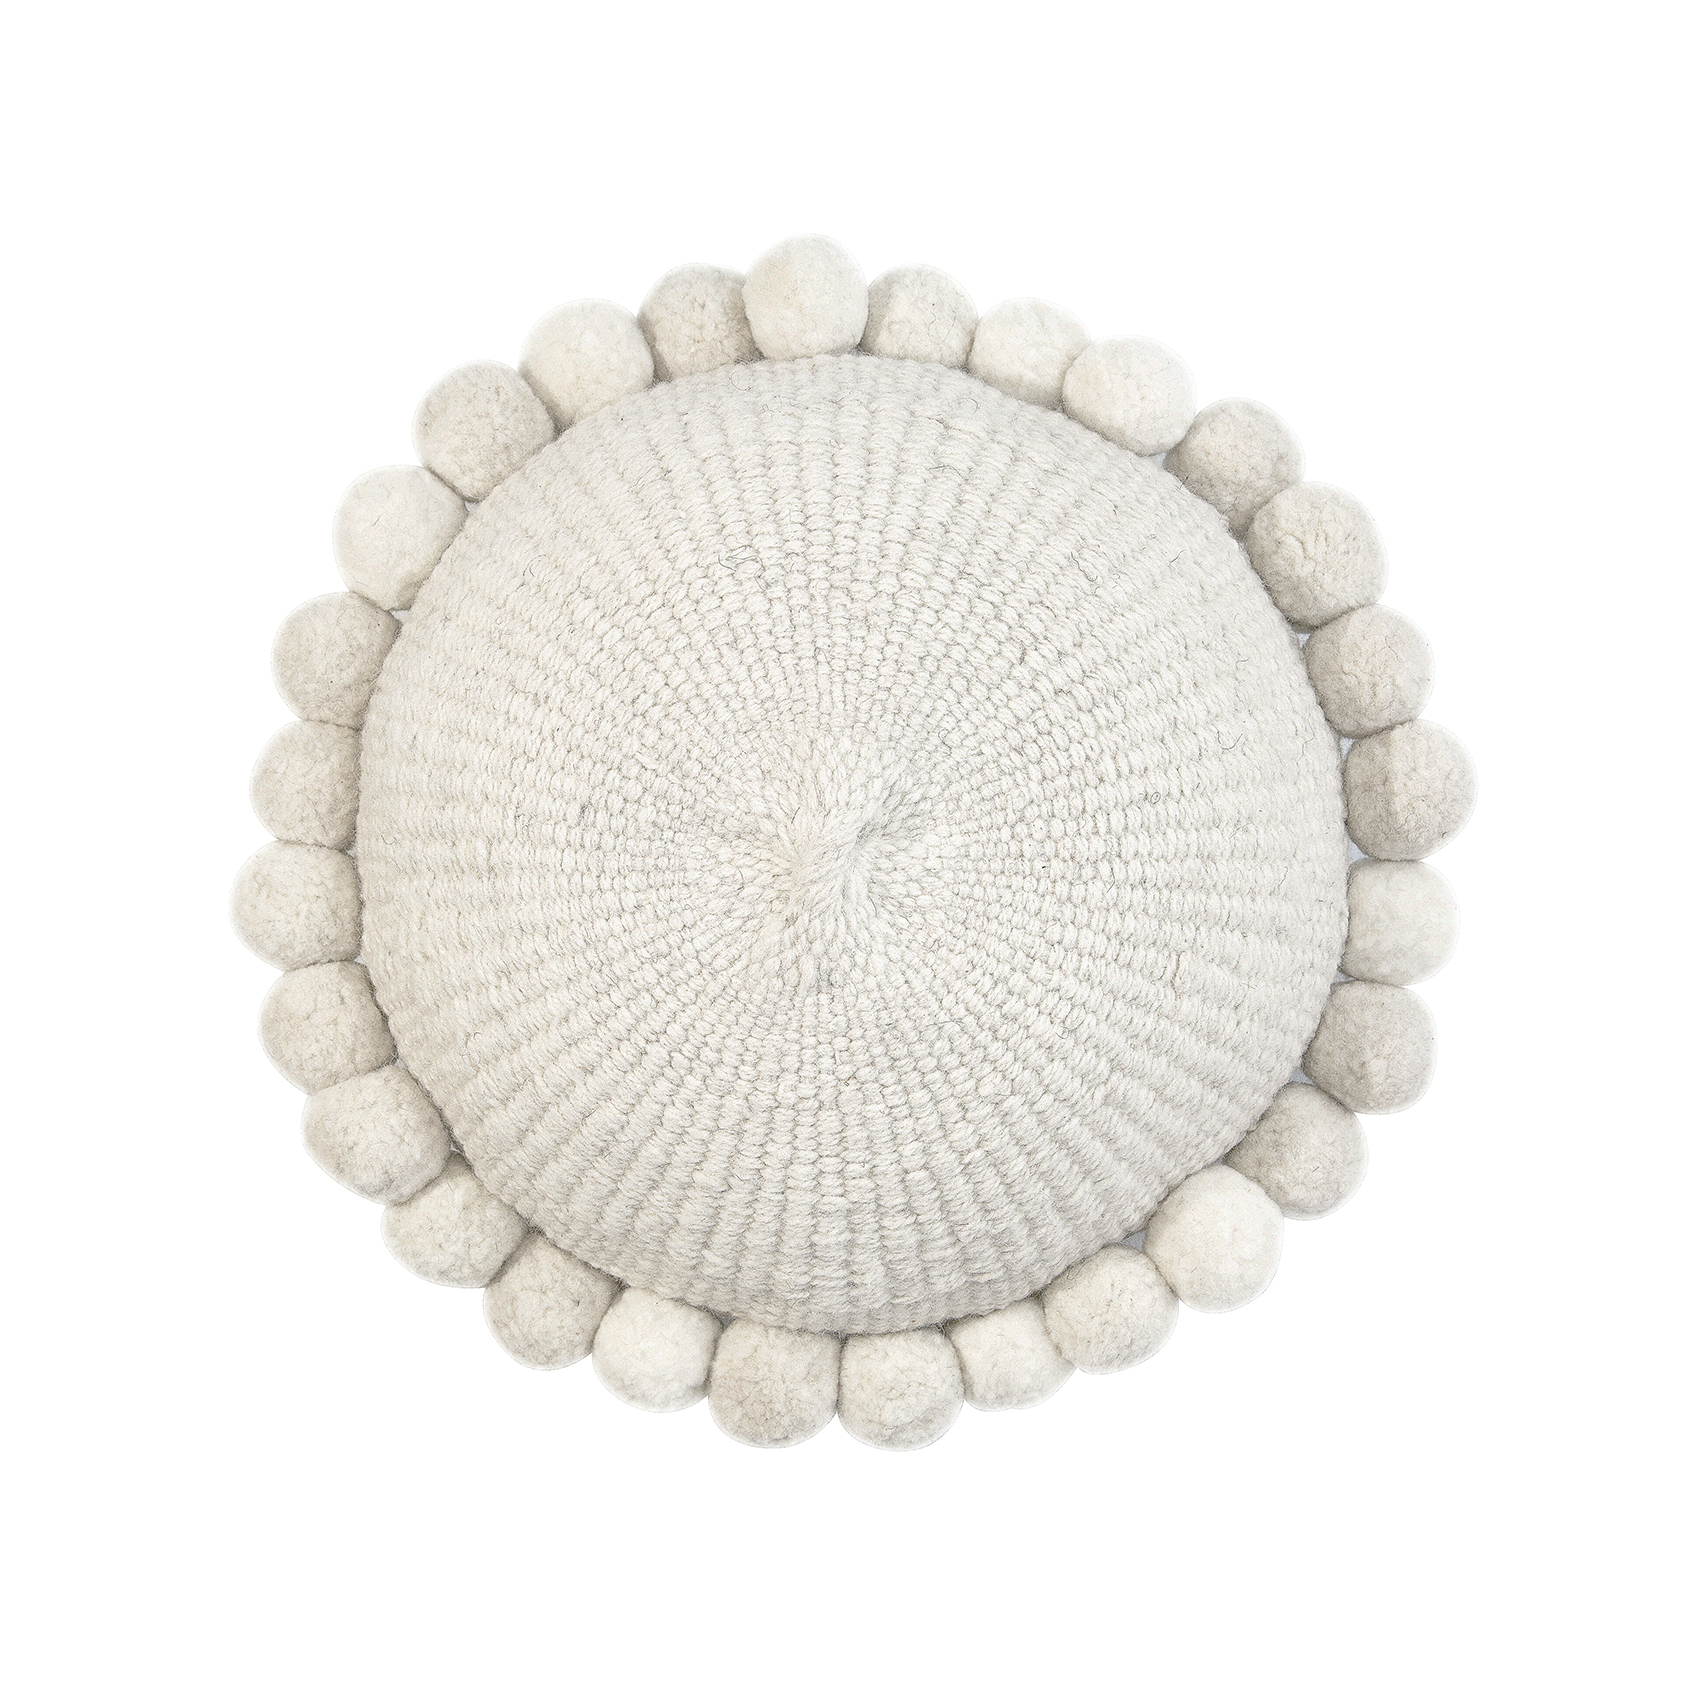 LR_Monte Round Cushion White #1_White  .jpg